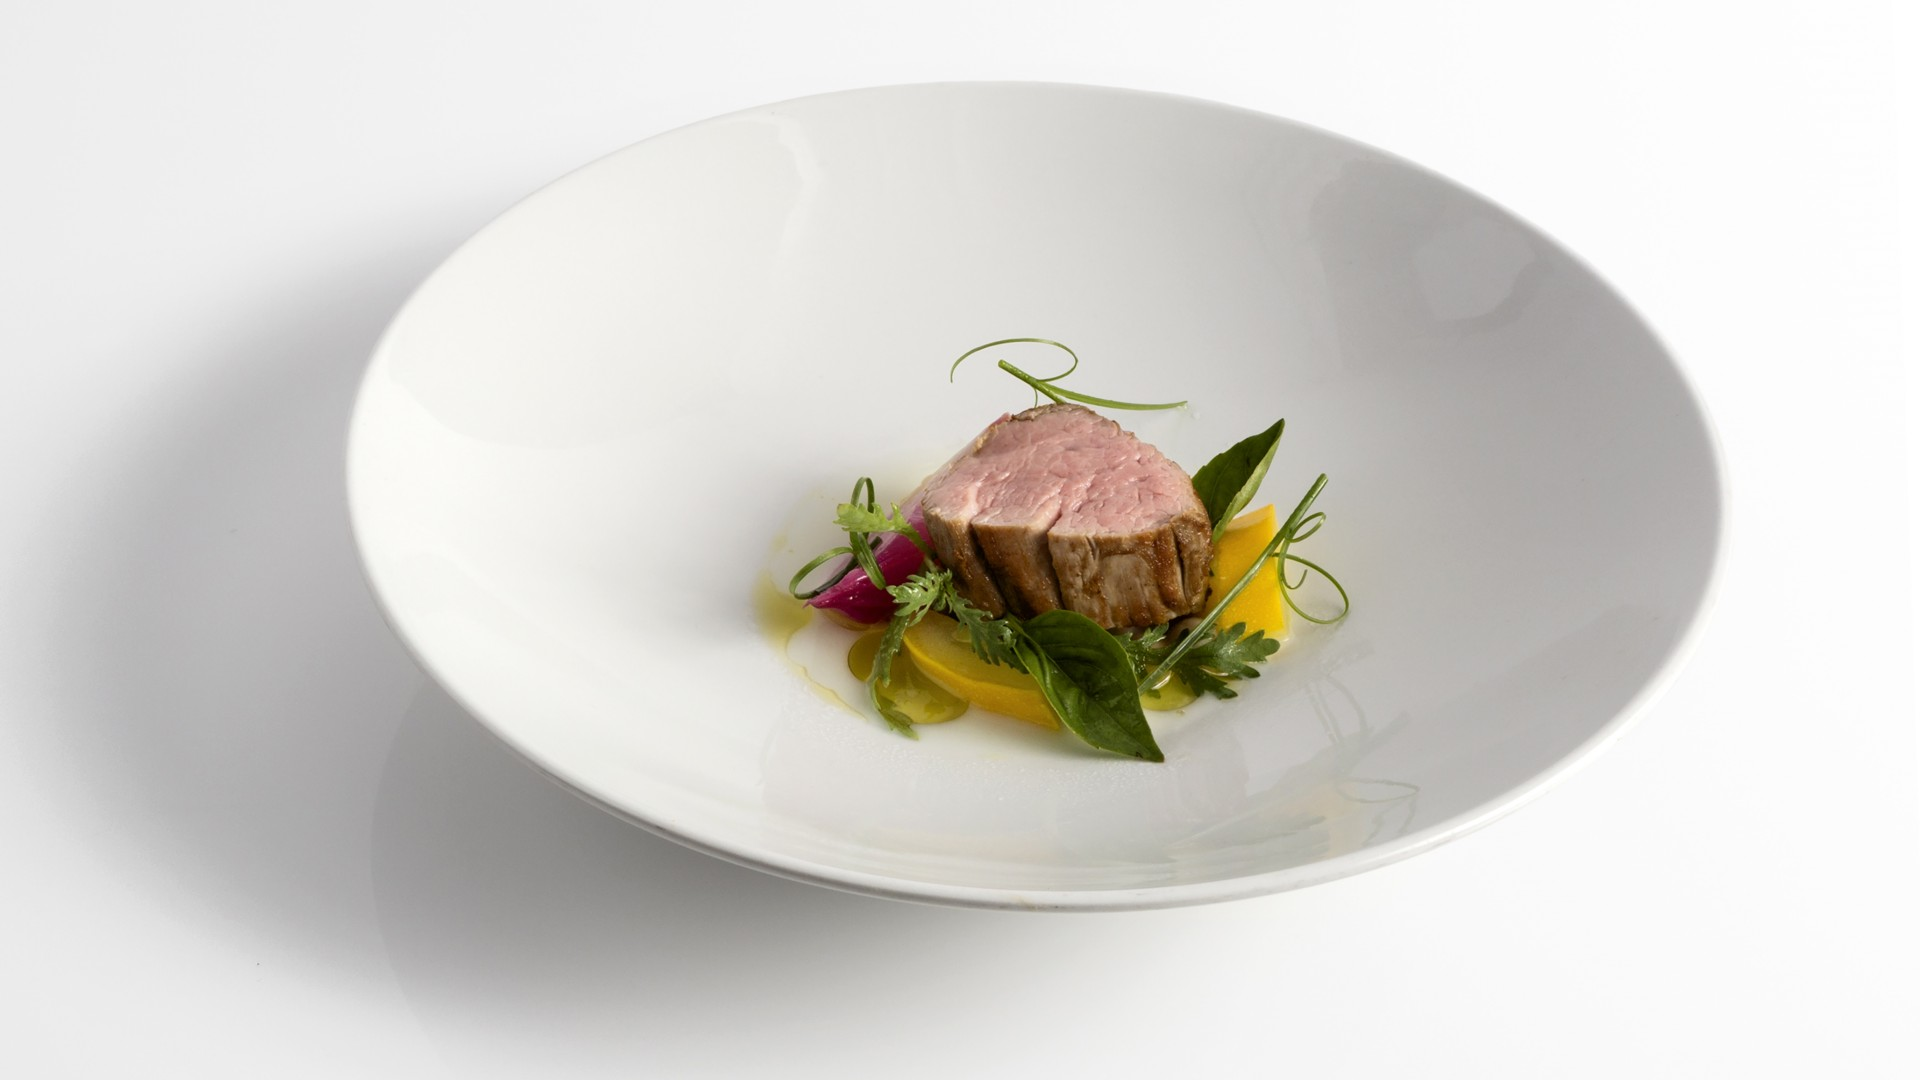 Dabbous' veal dish